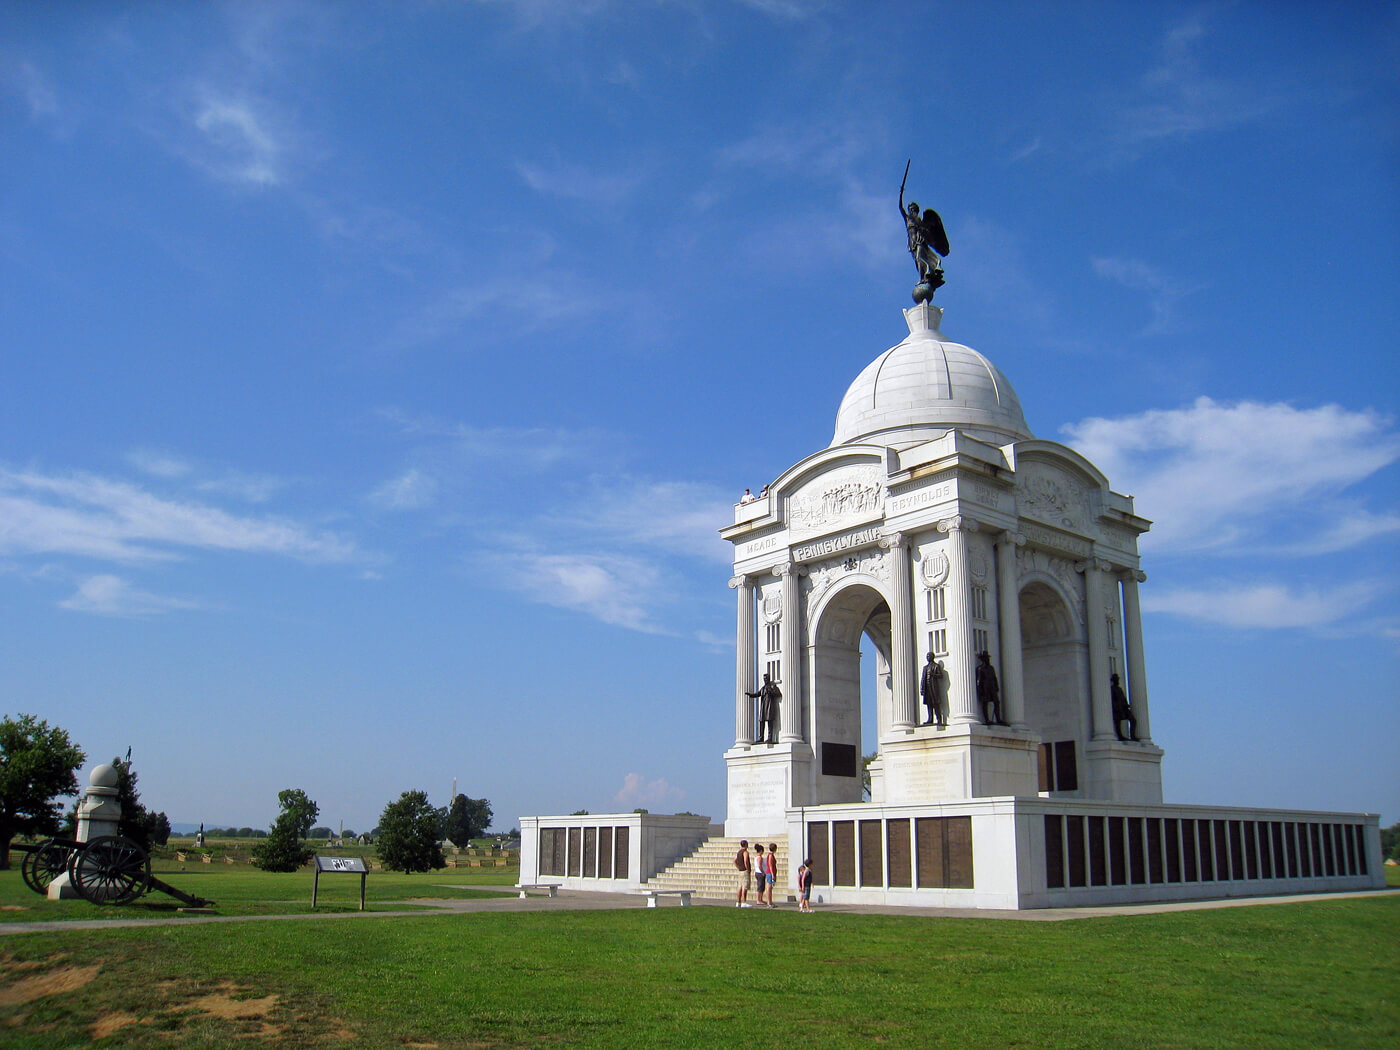 The Pennsylvania State Memorial on the Gettysburg Battlefield